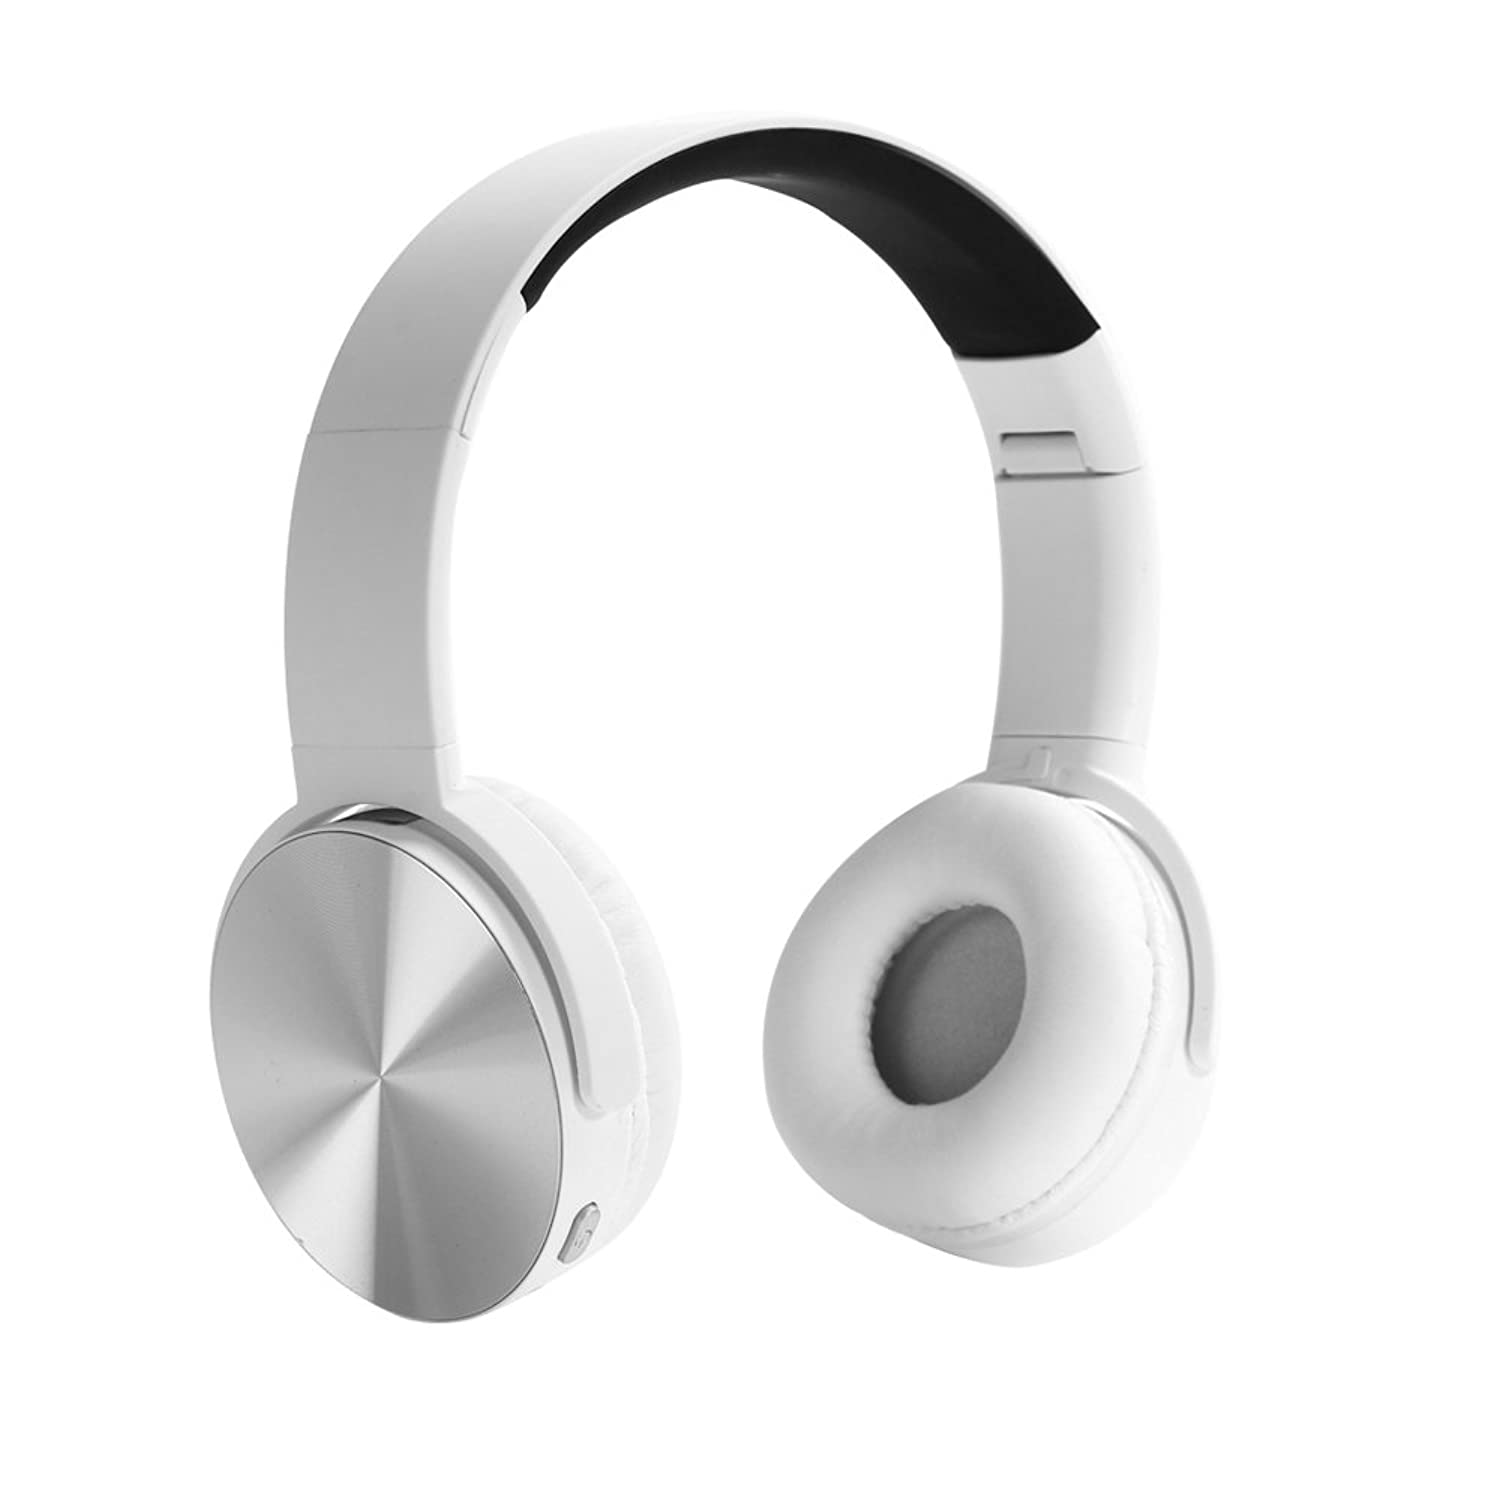 YHhao Wired/Wireless On-Ear Headphones, Noise Canceling Headsets, Foldable Headsets with Volume Control, Built-in Mic for PC, Computer, Laptop, iPhone, Android Smartphone, etc -PearlWhite